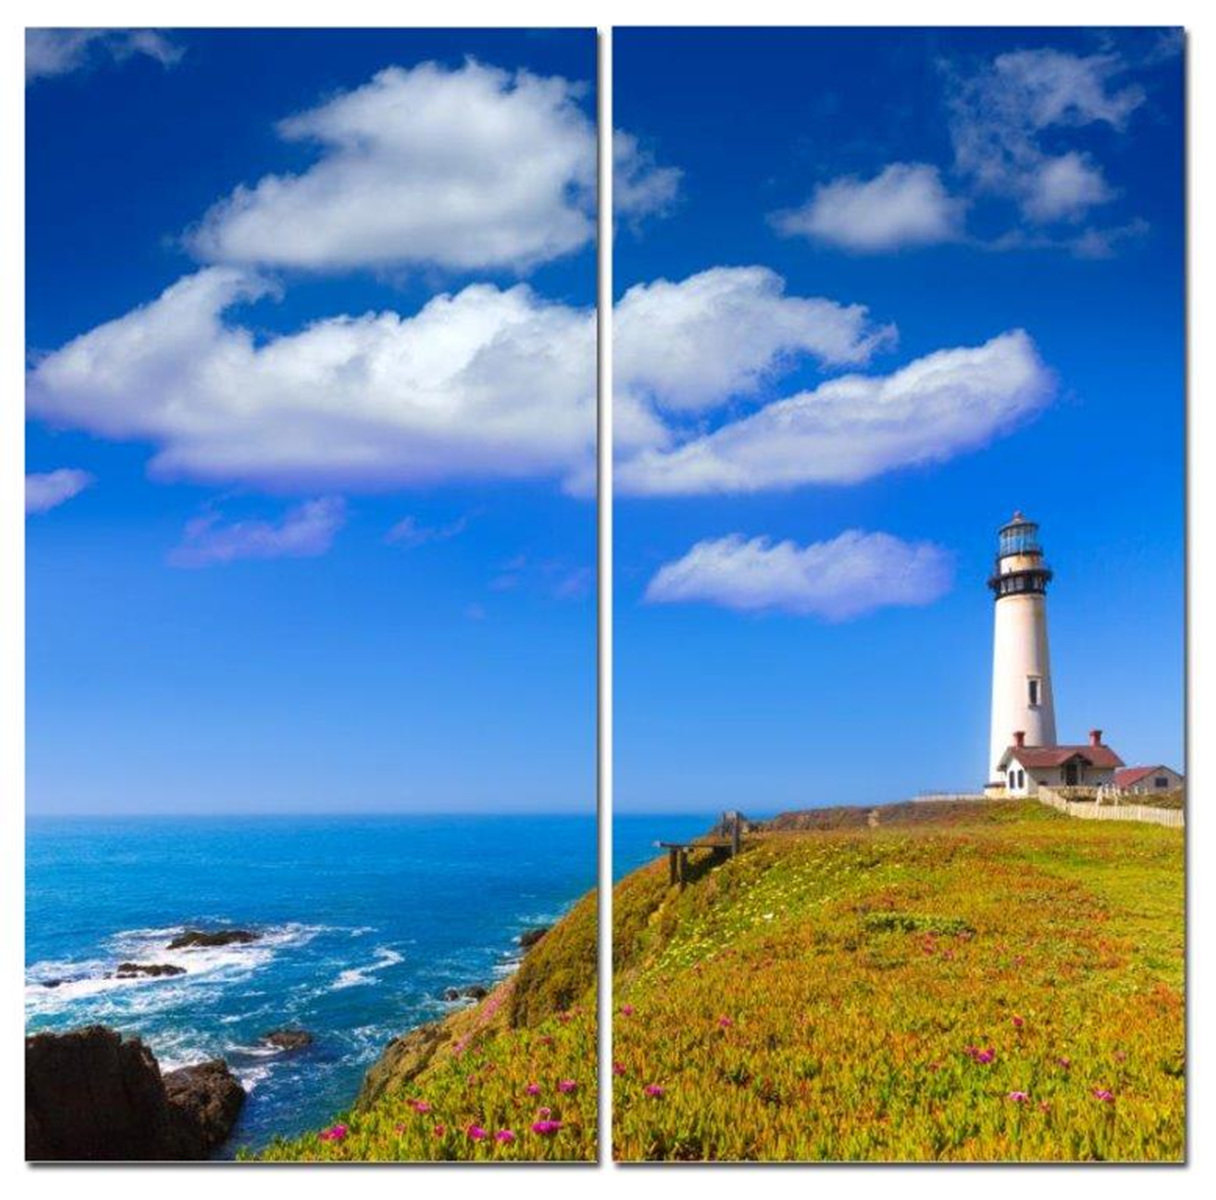 "Lighthouse on Bluffs Overlooking Ocean 12"" x 24"" 2 Piece Canvas Print Set"